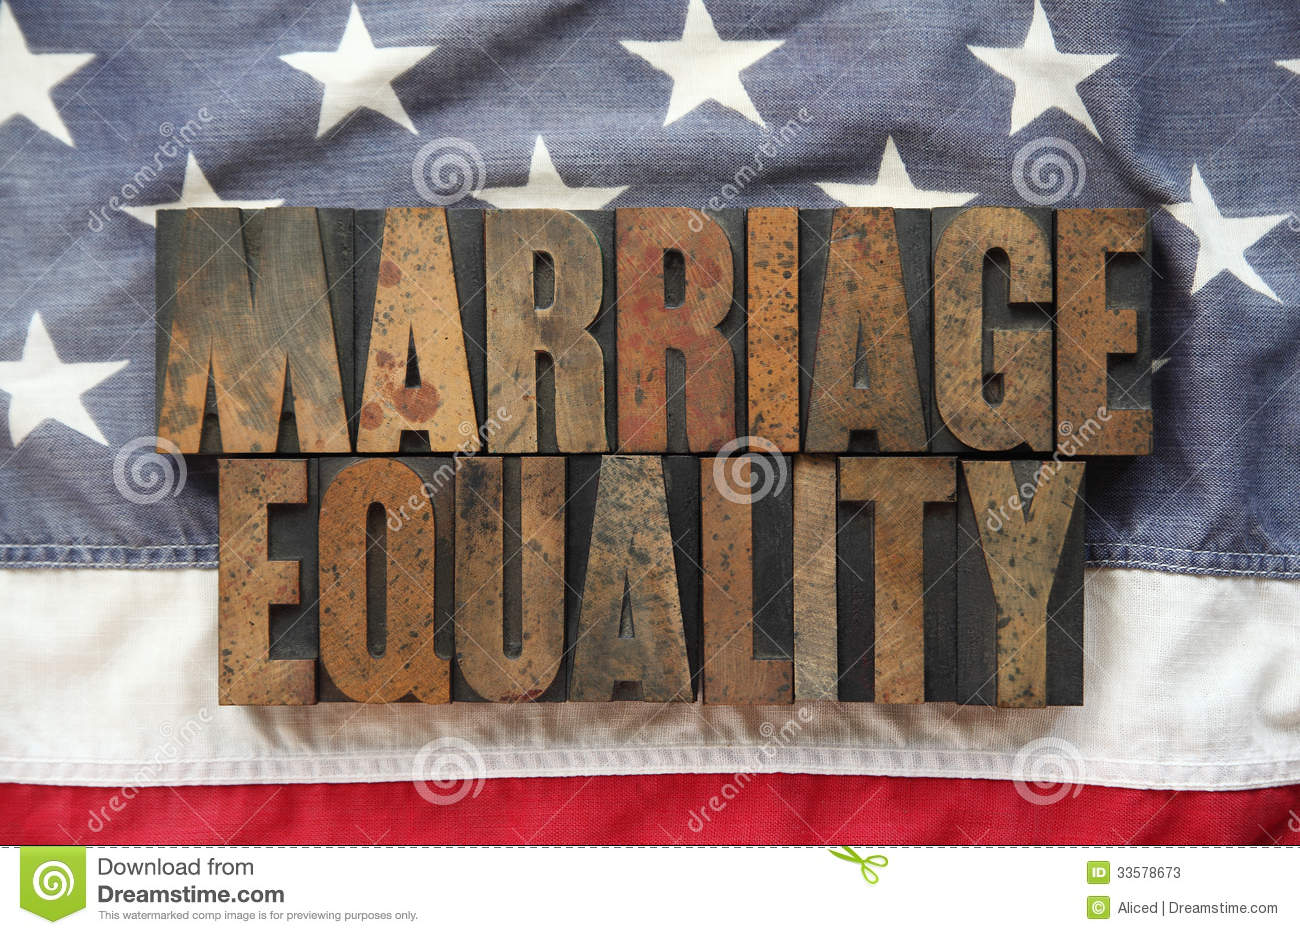 Marriage equality on old American flag